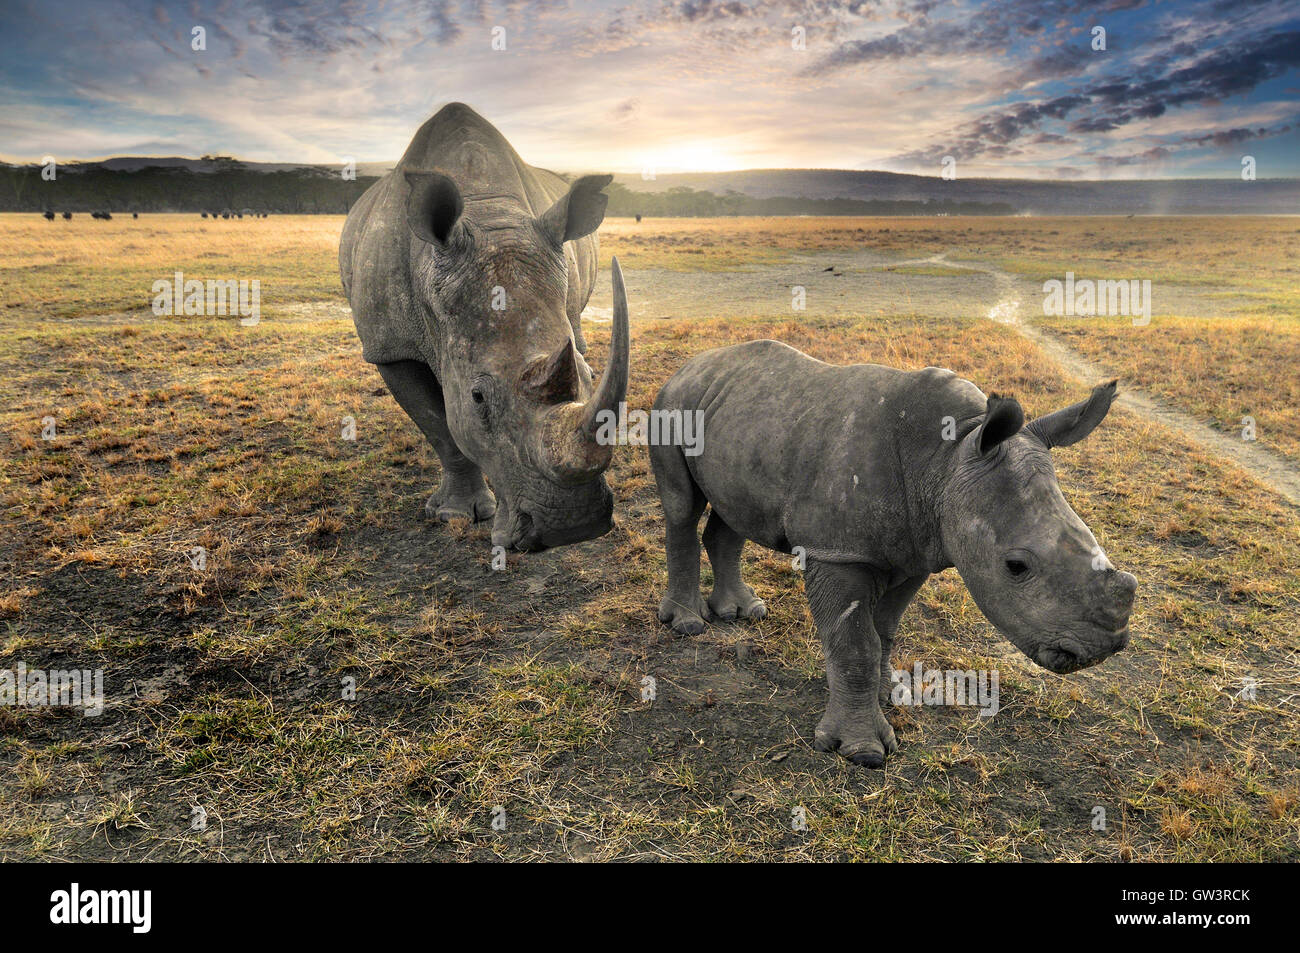 Rhino Mother and Baby at Sunset - Stock Image